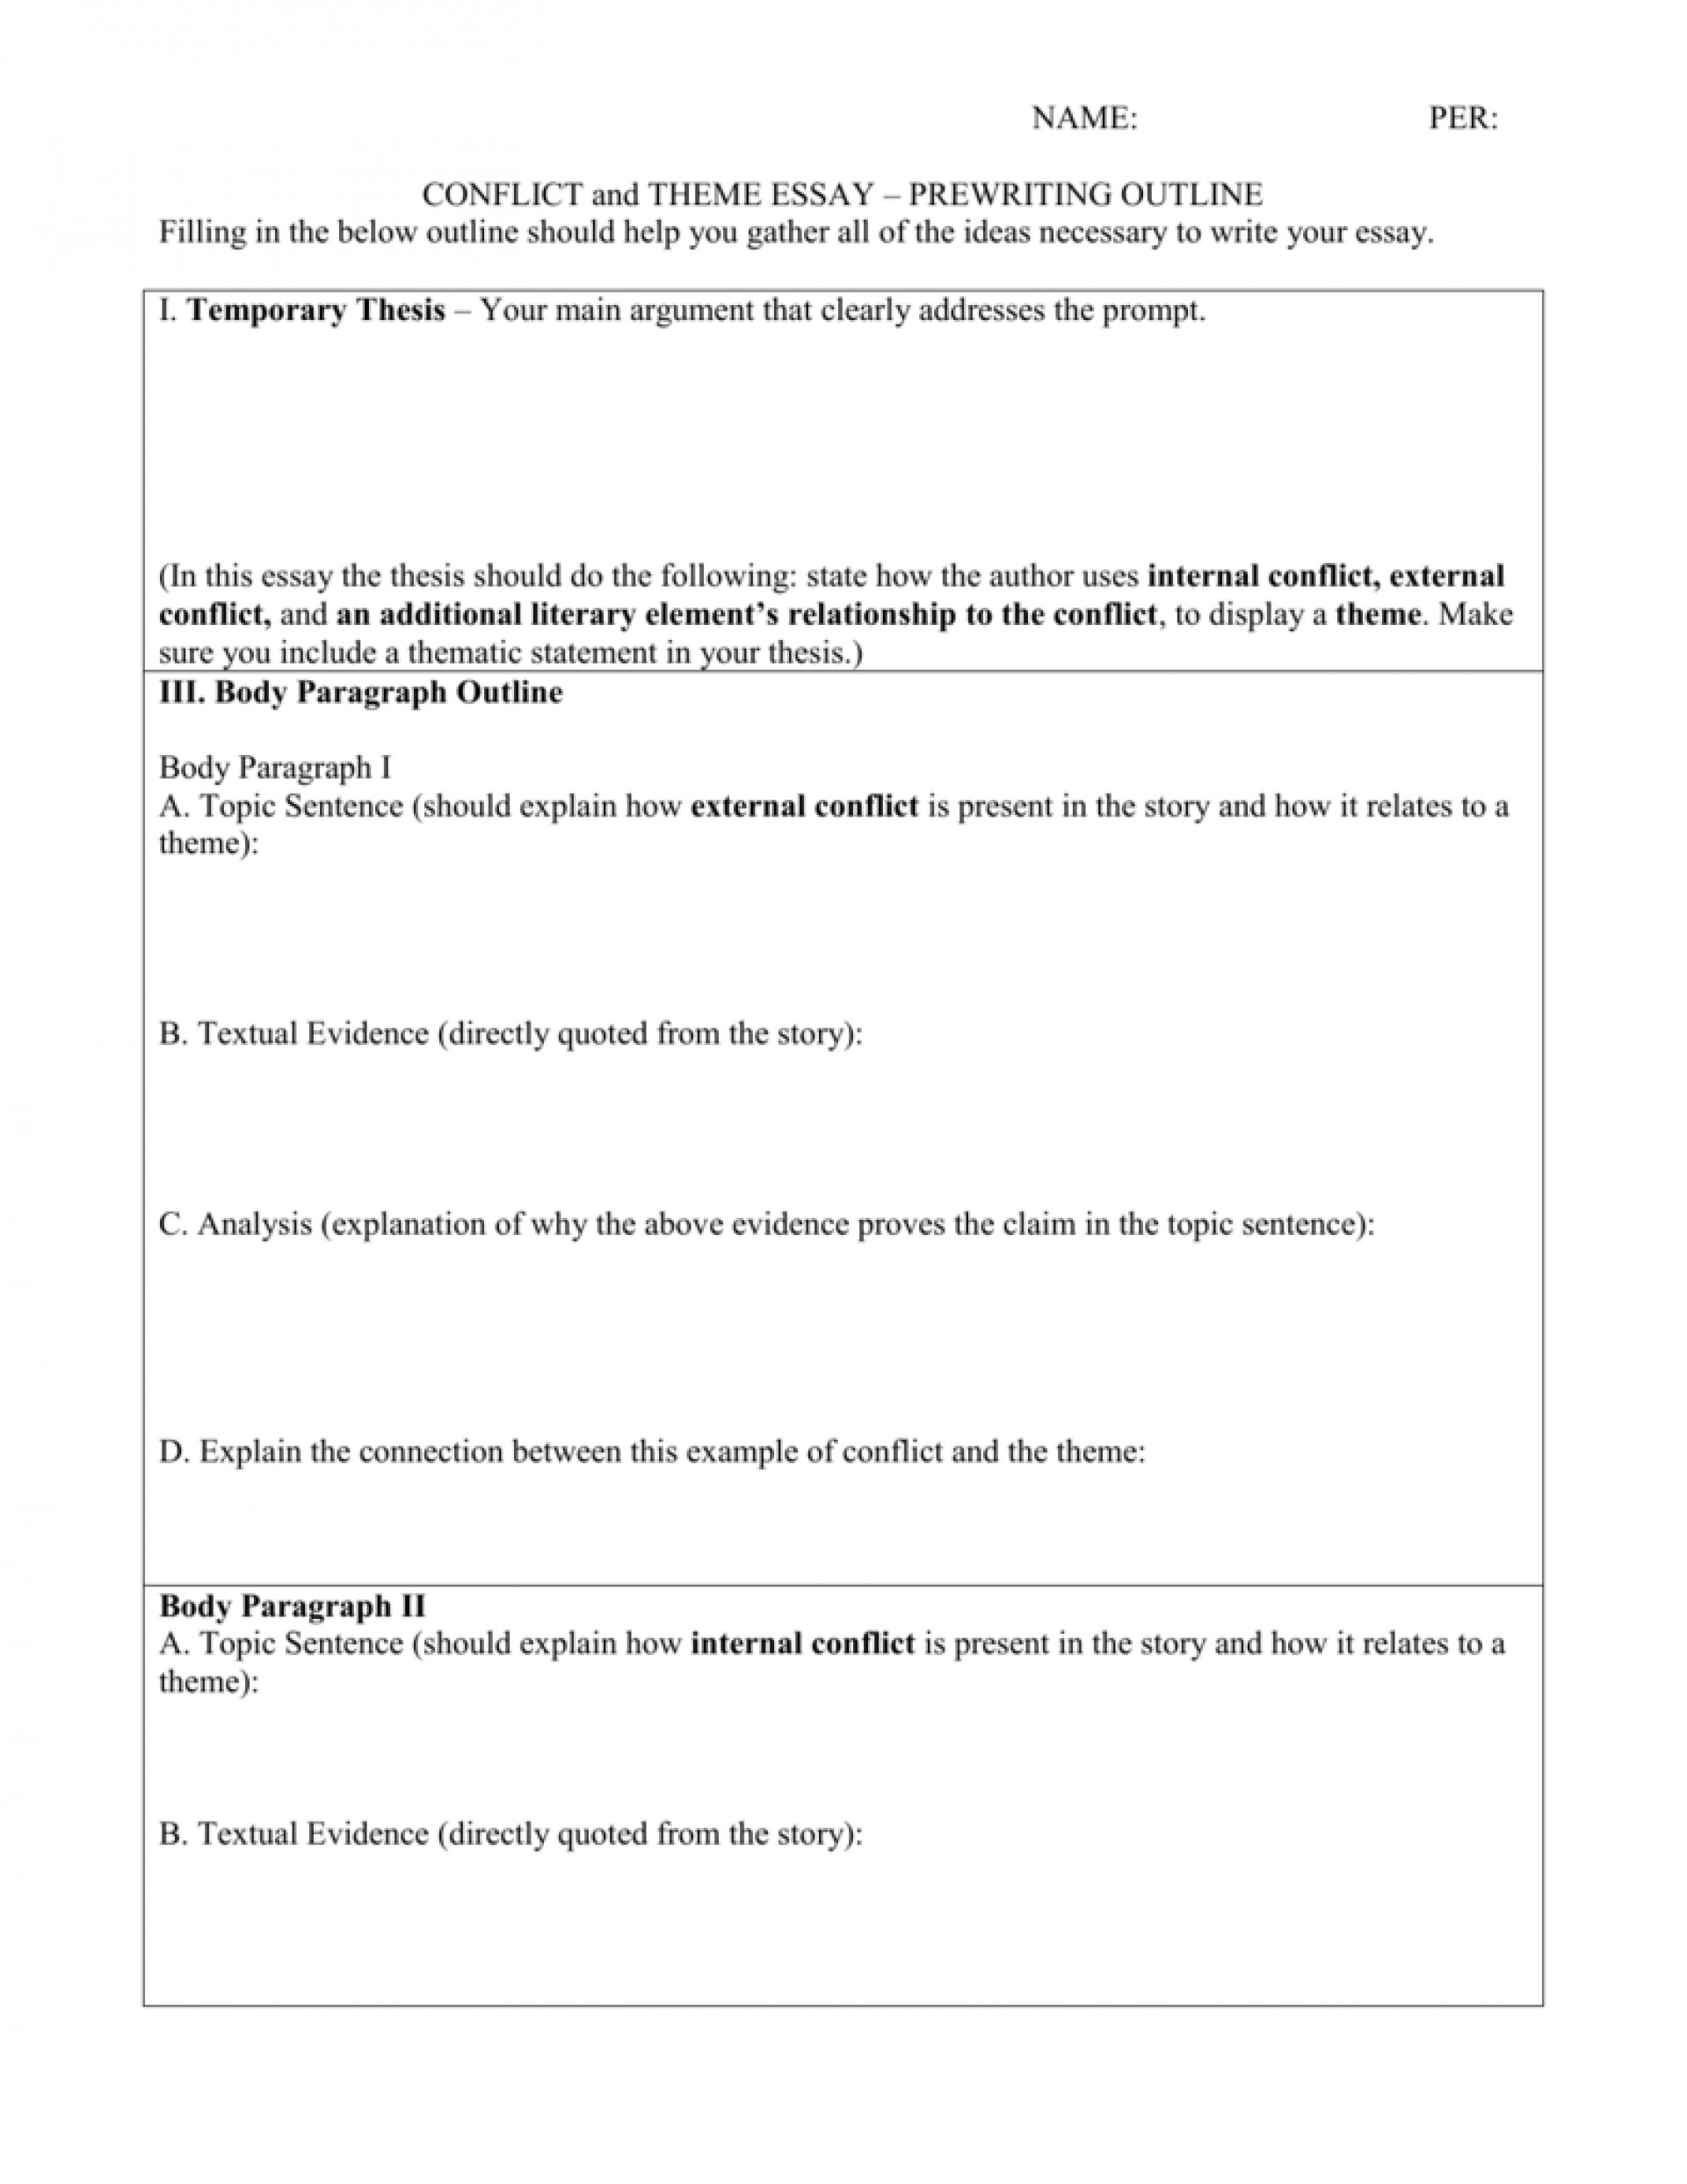 013 Essay Outline 008002500 1 Impressive Narrative Worksheet Writing Graphic Organizers Thematic Organizer 1920